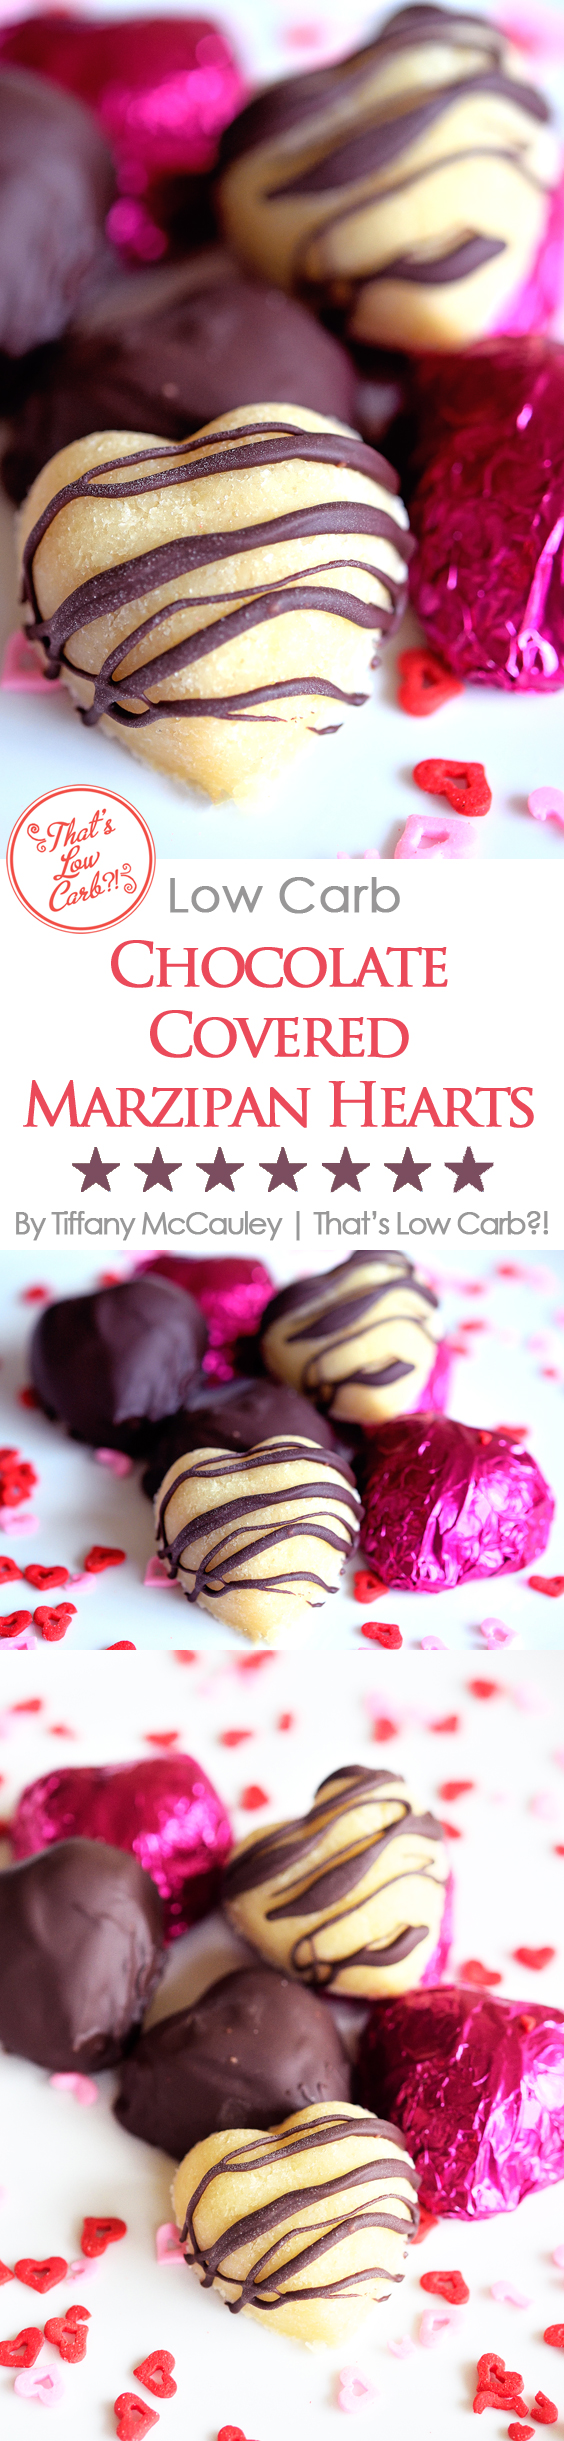 Low Carb Chocolate Covered Marzipan Hearts Recipe Pinnable Image.